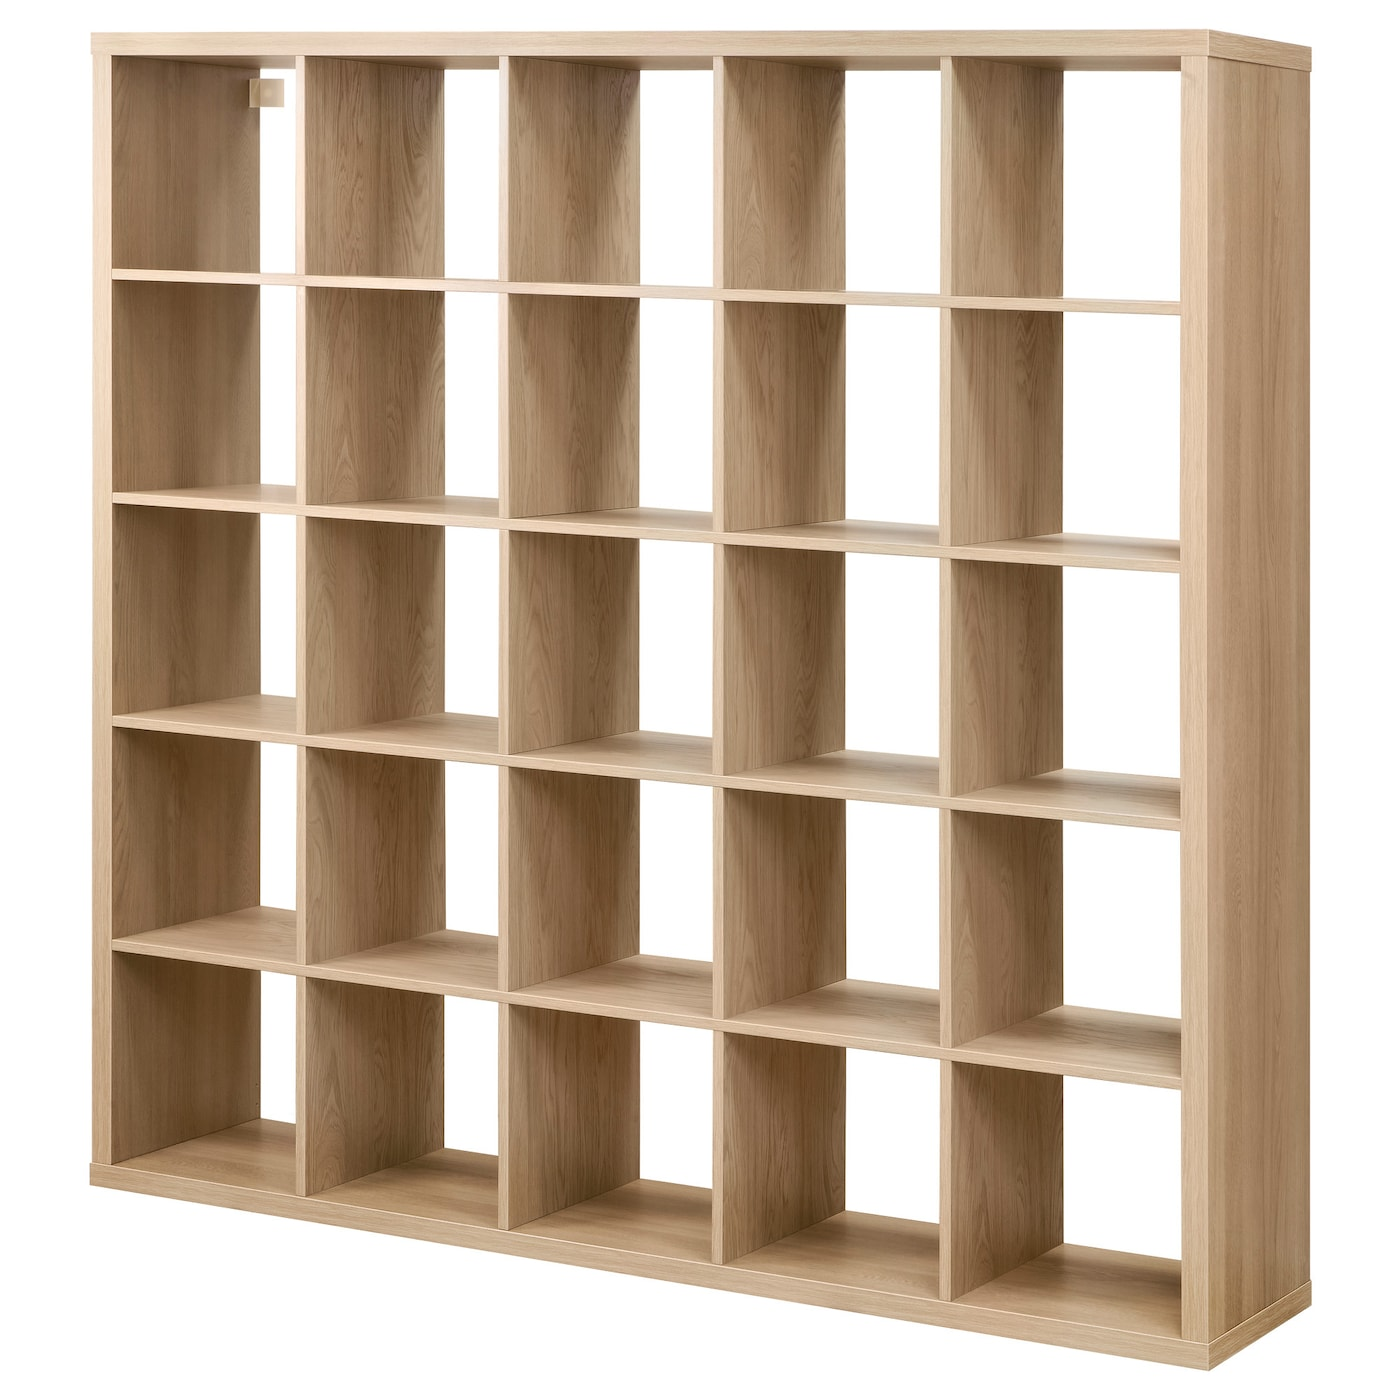 Kallax Shelving Unit Oak Effect 182 X 182 Cm Ikea